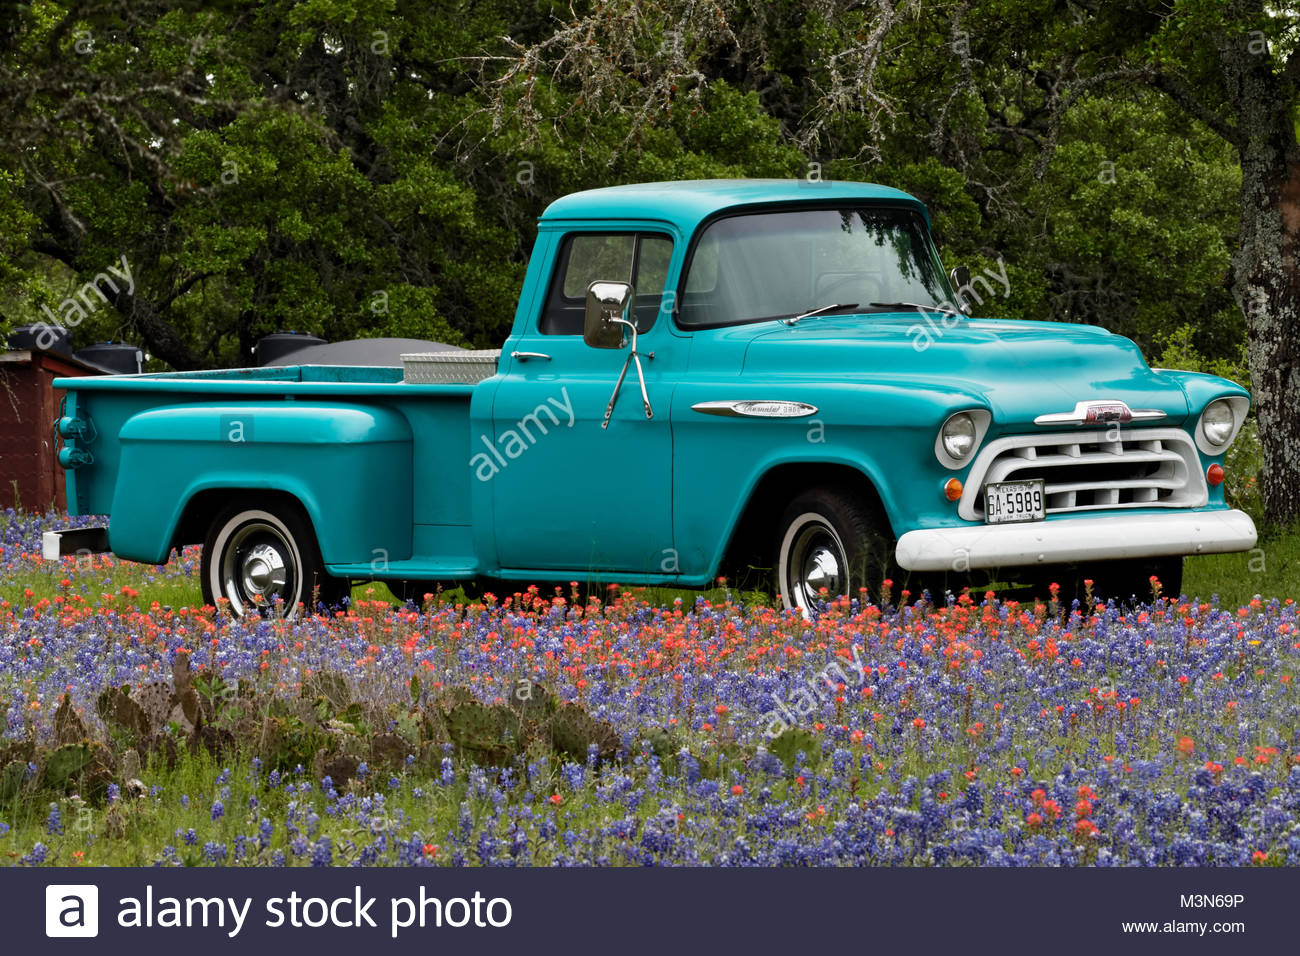 1957 Chevrolet 3200 pick up truck in wild flowers in Texas - Stock Image